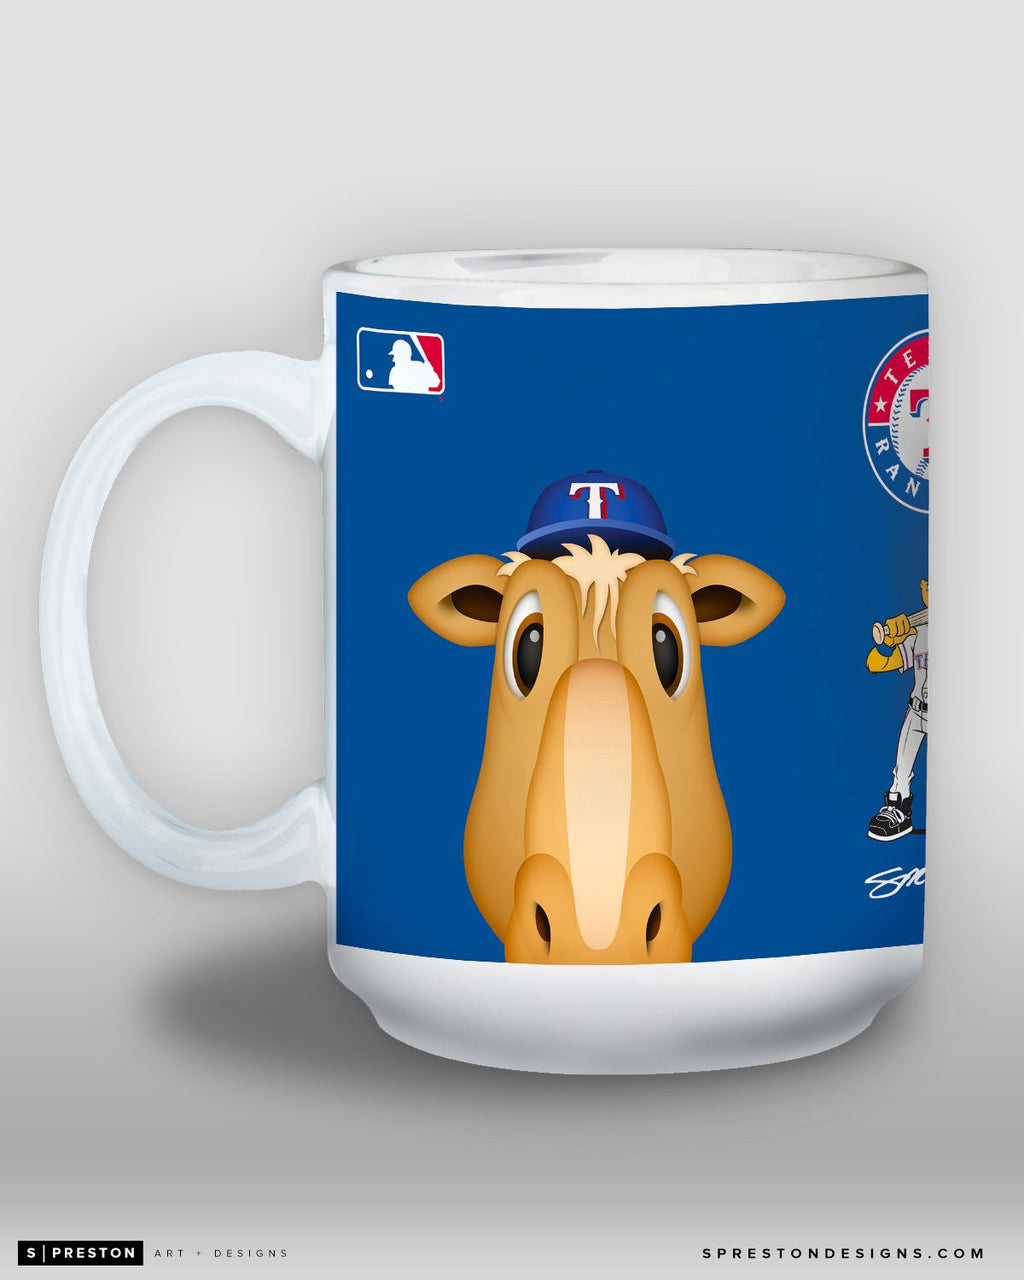 Minimalist Ranger Captain Coffee Mug - MLB Licensed - Texas Rangers Mascot